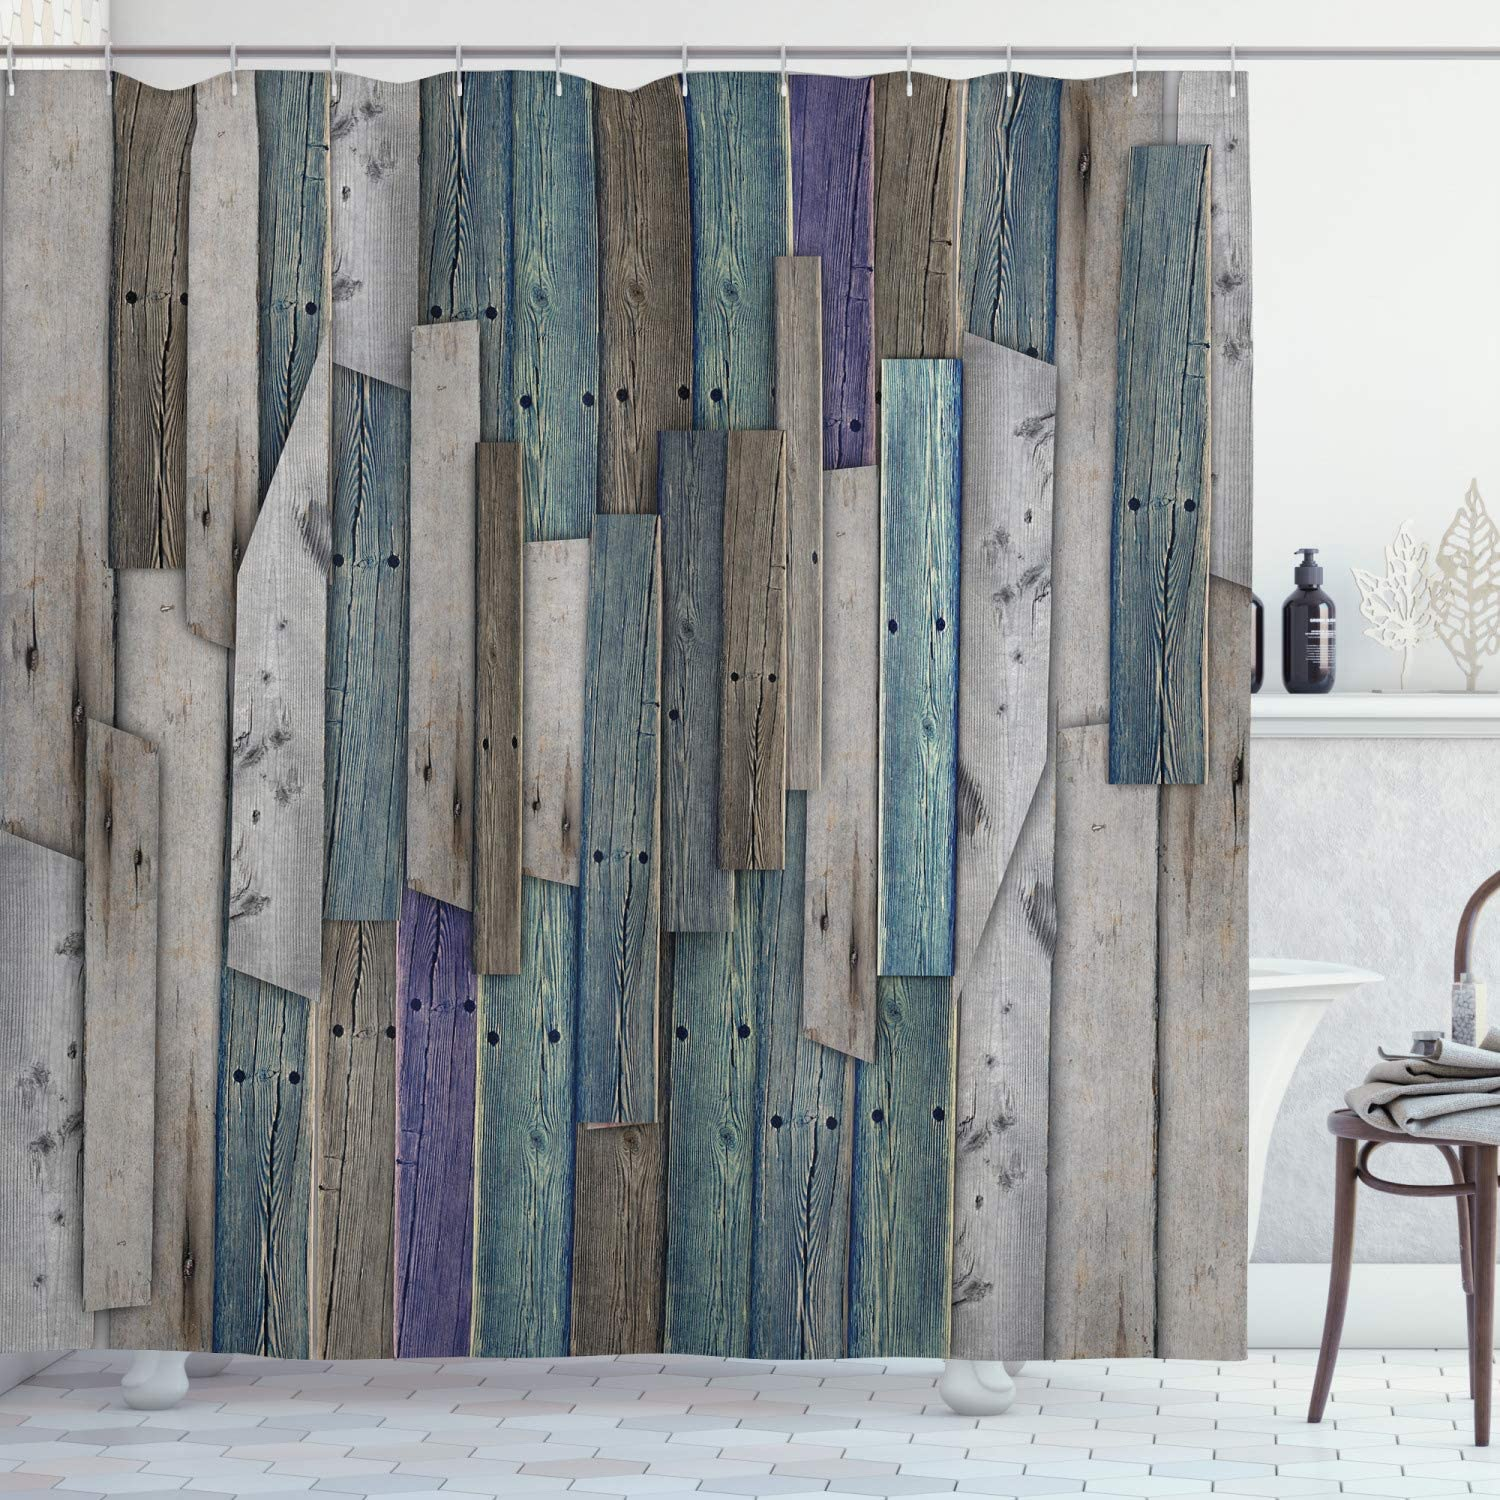 """Ambesonne Rustic Shower Curtain, Image of Blue Grey Grunge Wood Planks Barn House Door Nails Country Life Theme Print, Cloth Fabric Bathroom Decor Set with Hooks, 75"""" Long, Teal Purple"""